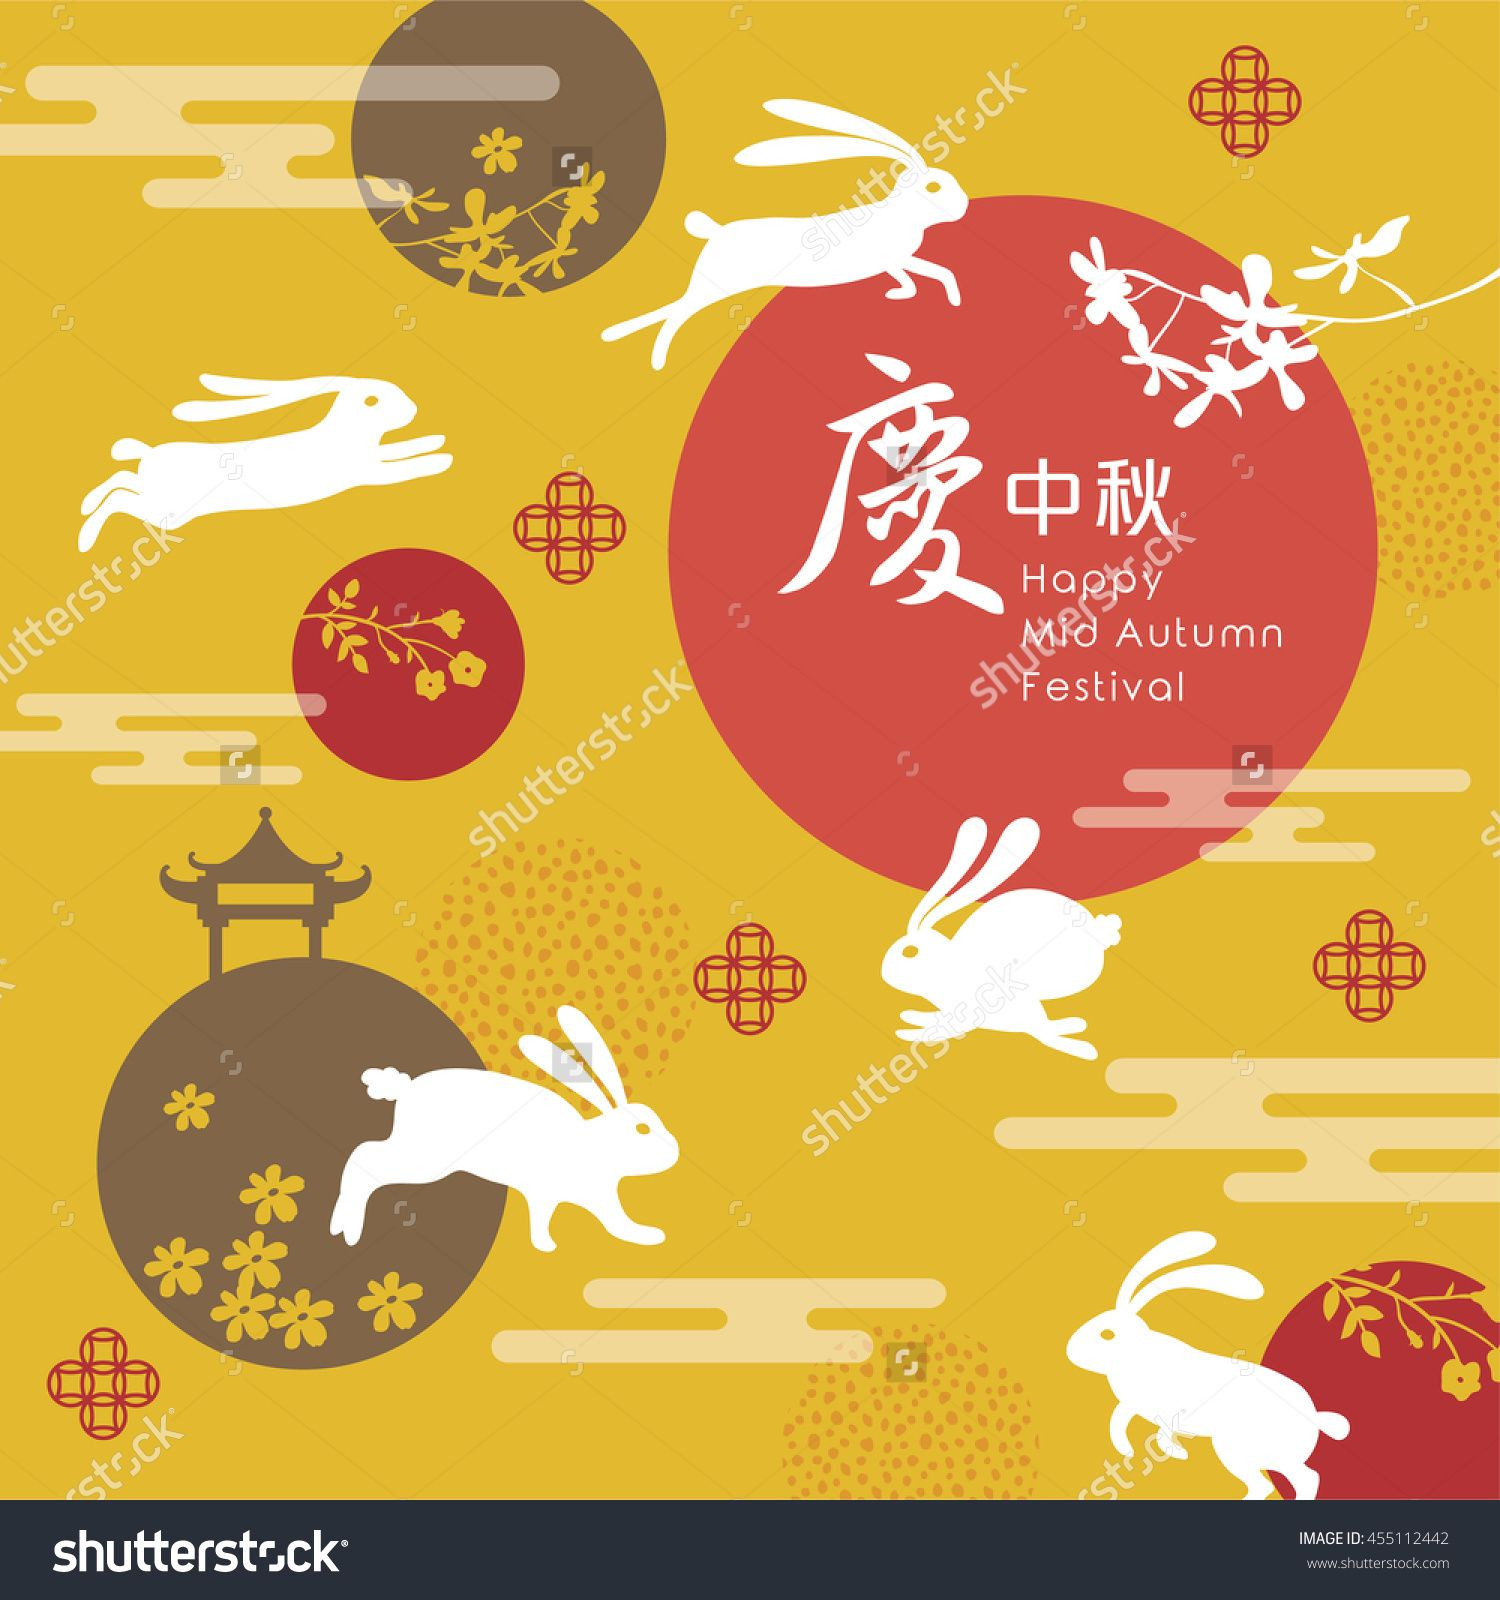 Mid autumn festival template vector translation happy mid autumn mid autumn festival template vector translation happy mid autumn festival my work pinterest happy mid autumn festival mid autumn festival and mid kristyandbryce Choice Image